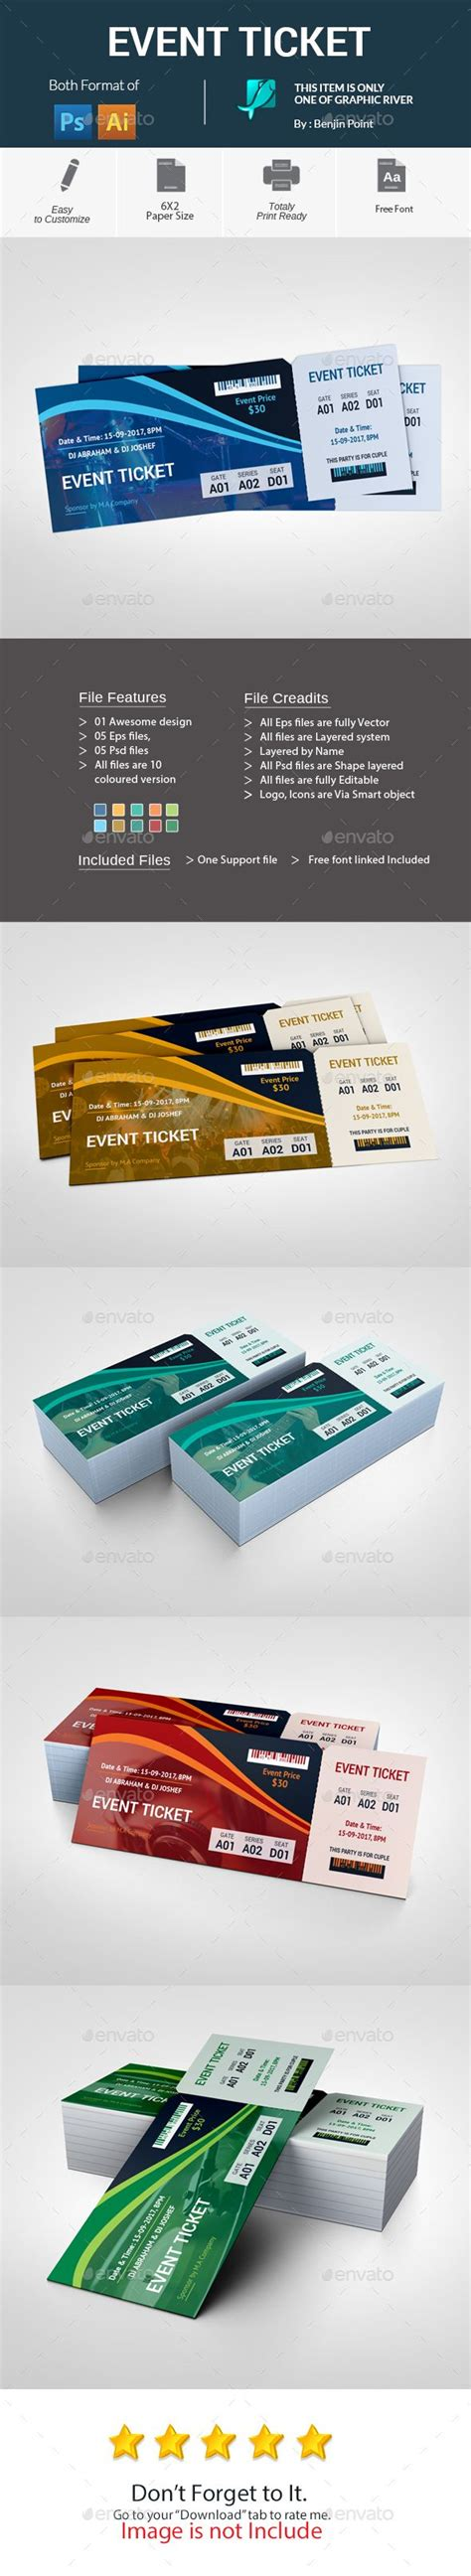 best 25 event tickets ideas on pinterest ticket design